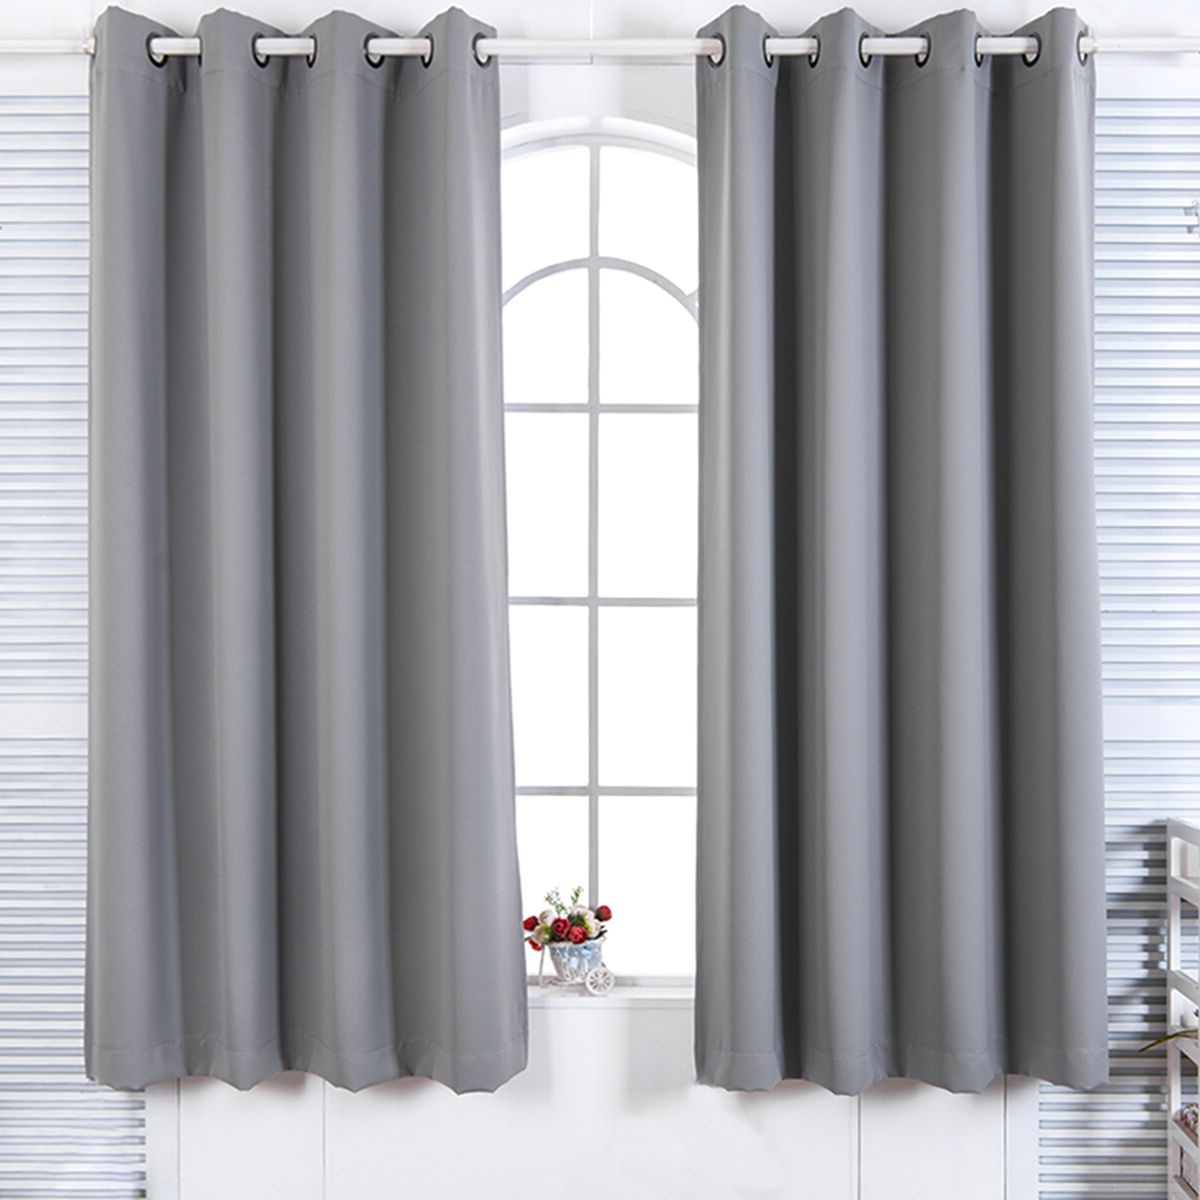 """Solid Insulated Thermal Blackout Curtain Panel Pairs Throughout Latest Details About 84"""" Lamia Premium Solid Insulated Thermal Blackout Grommet Window Panelseleg (View 17 of 20)"""